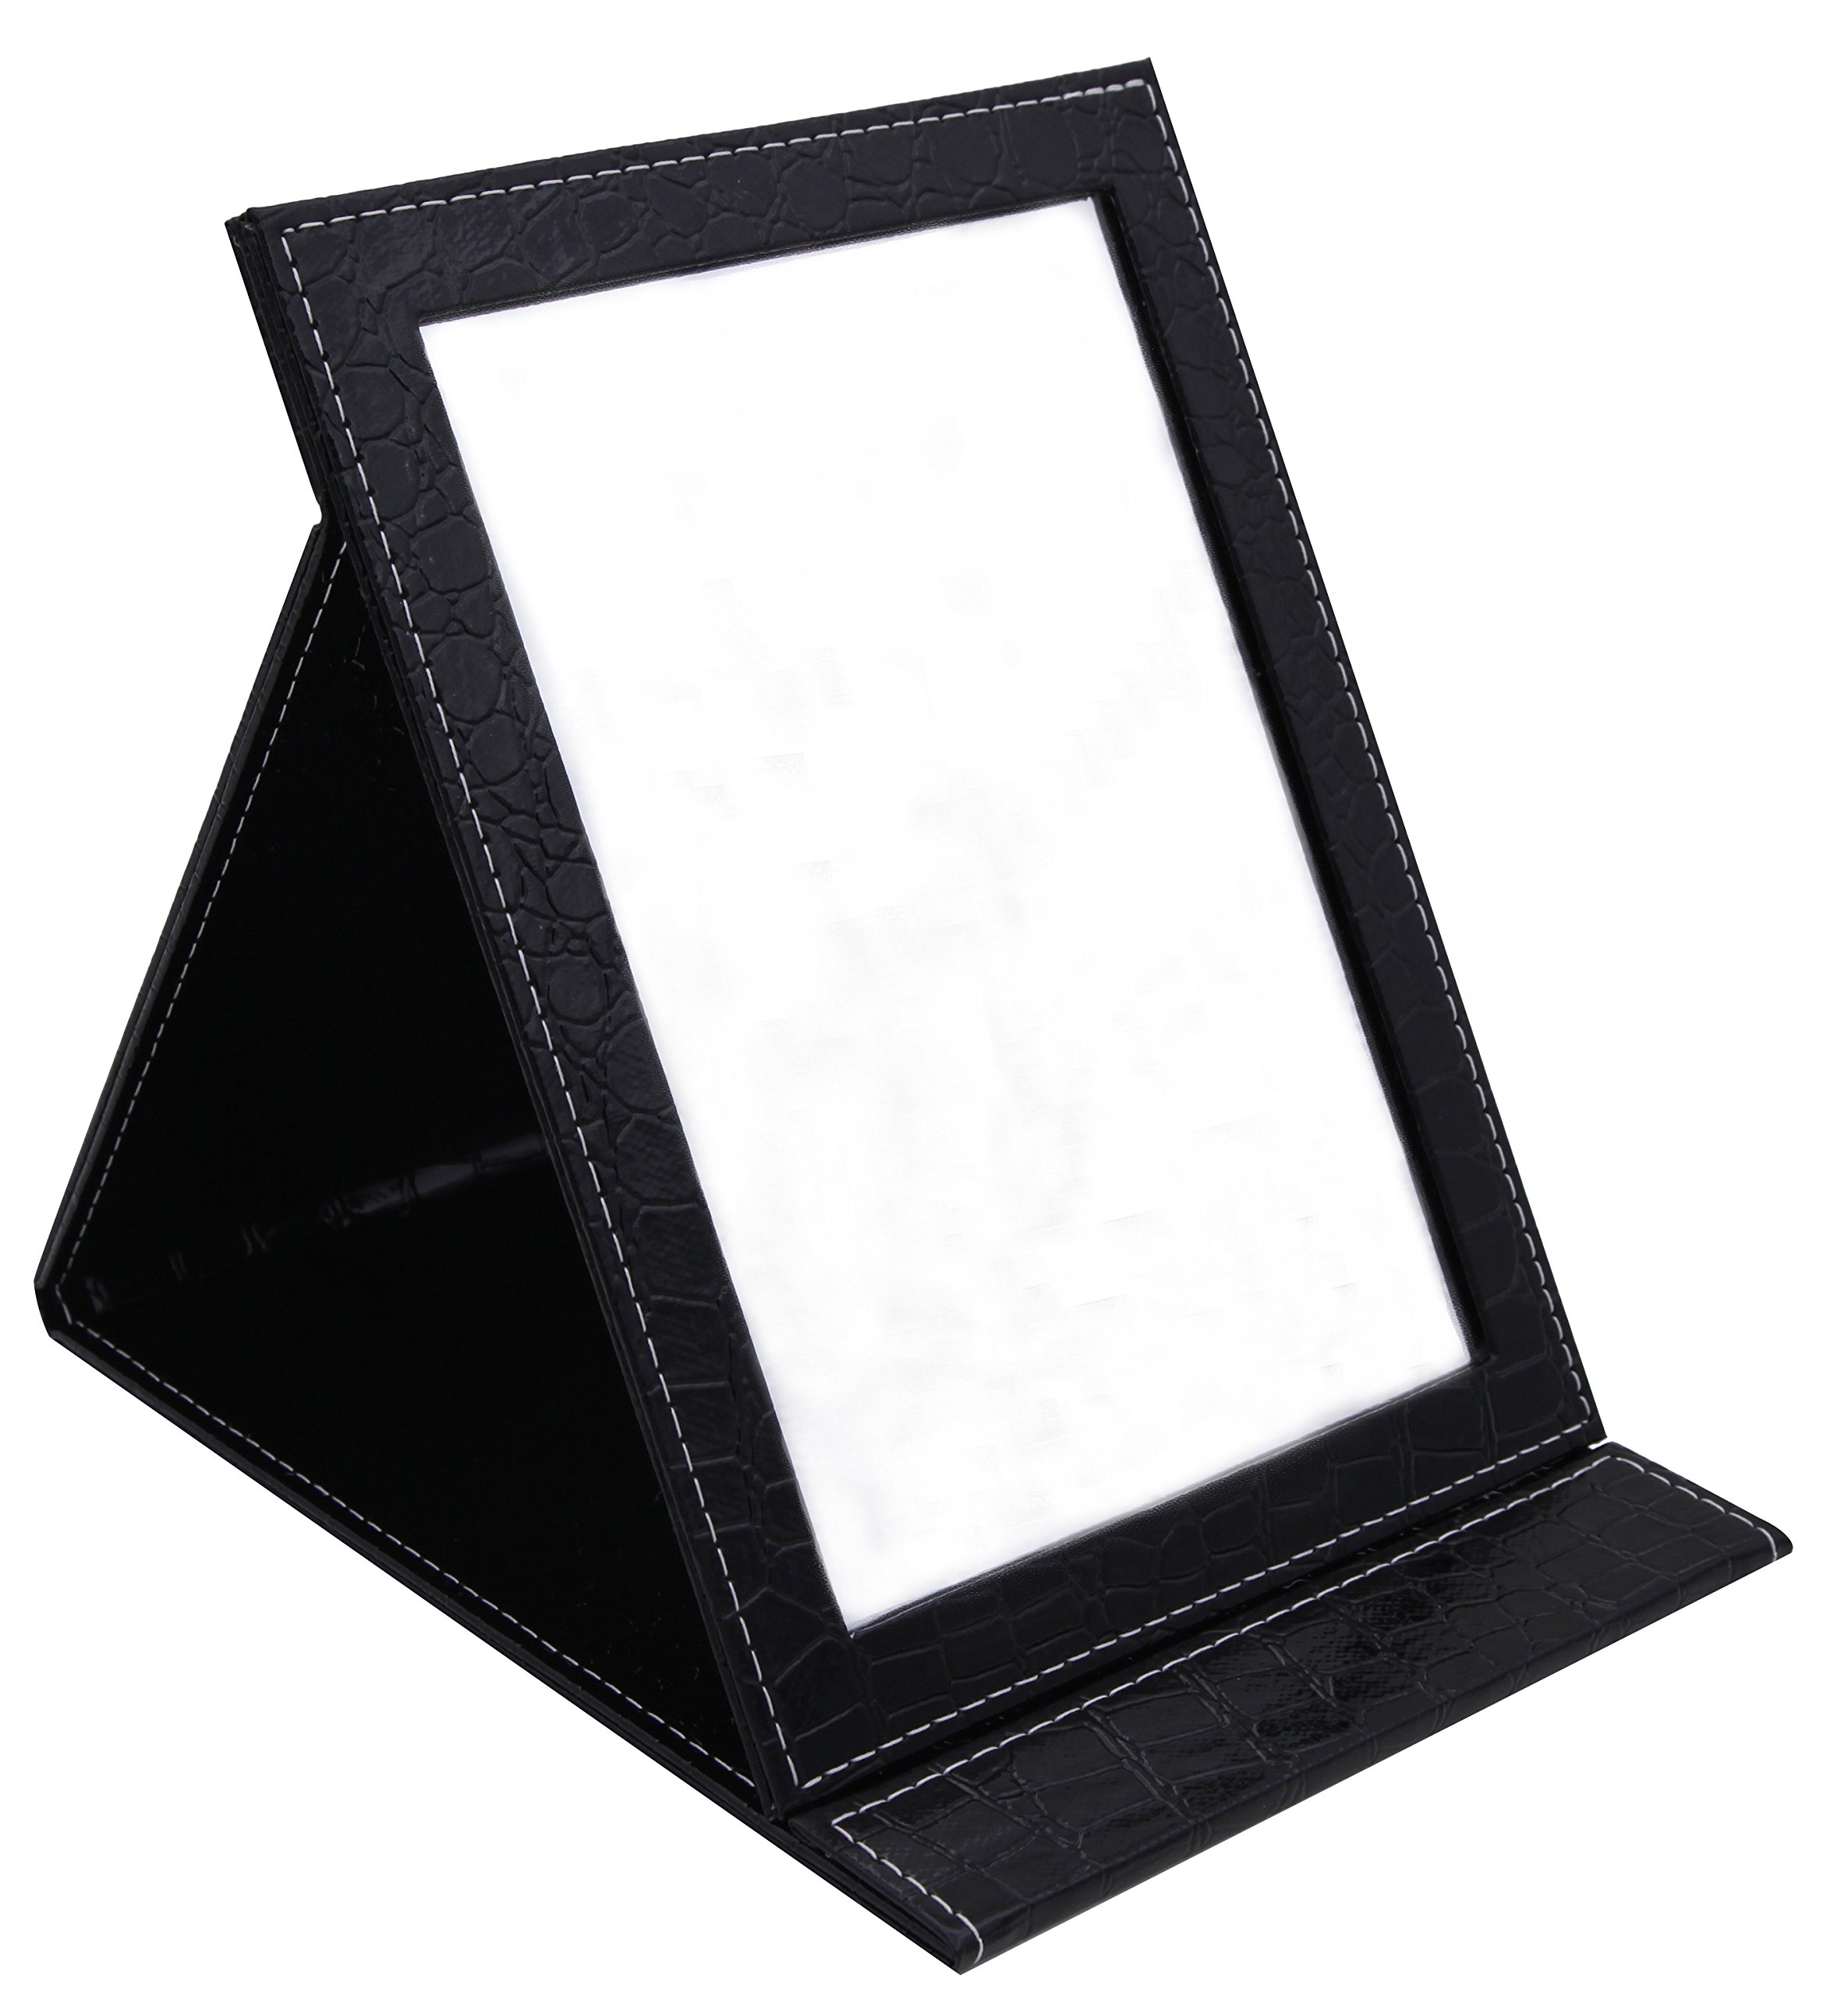 Famiry Large Portable Folding Mirror with Standing for Making Up, Black by March 6th